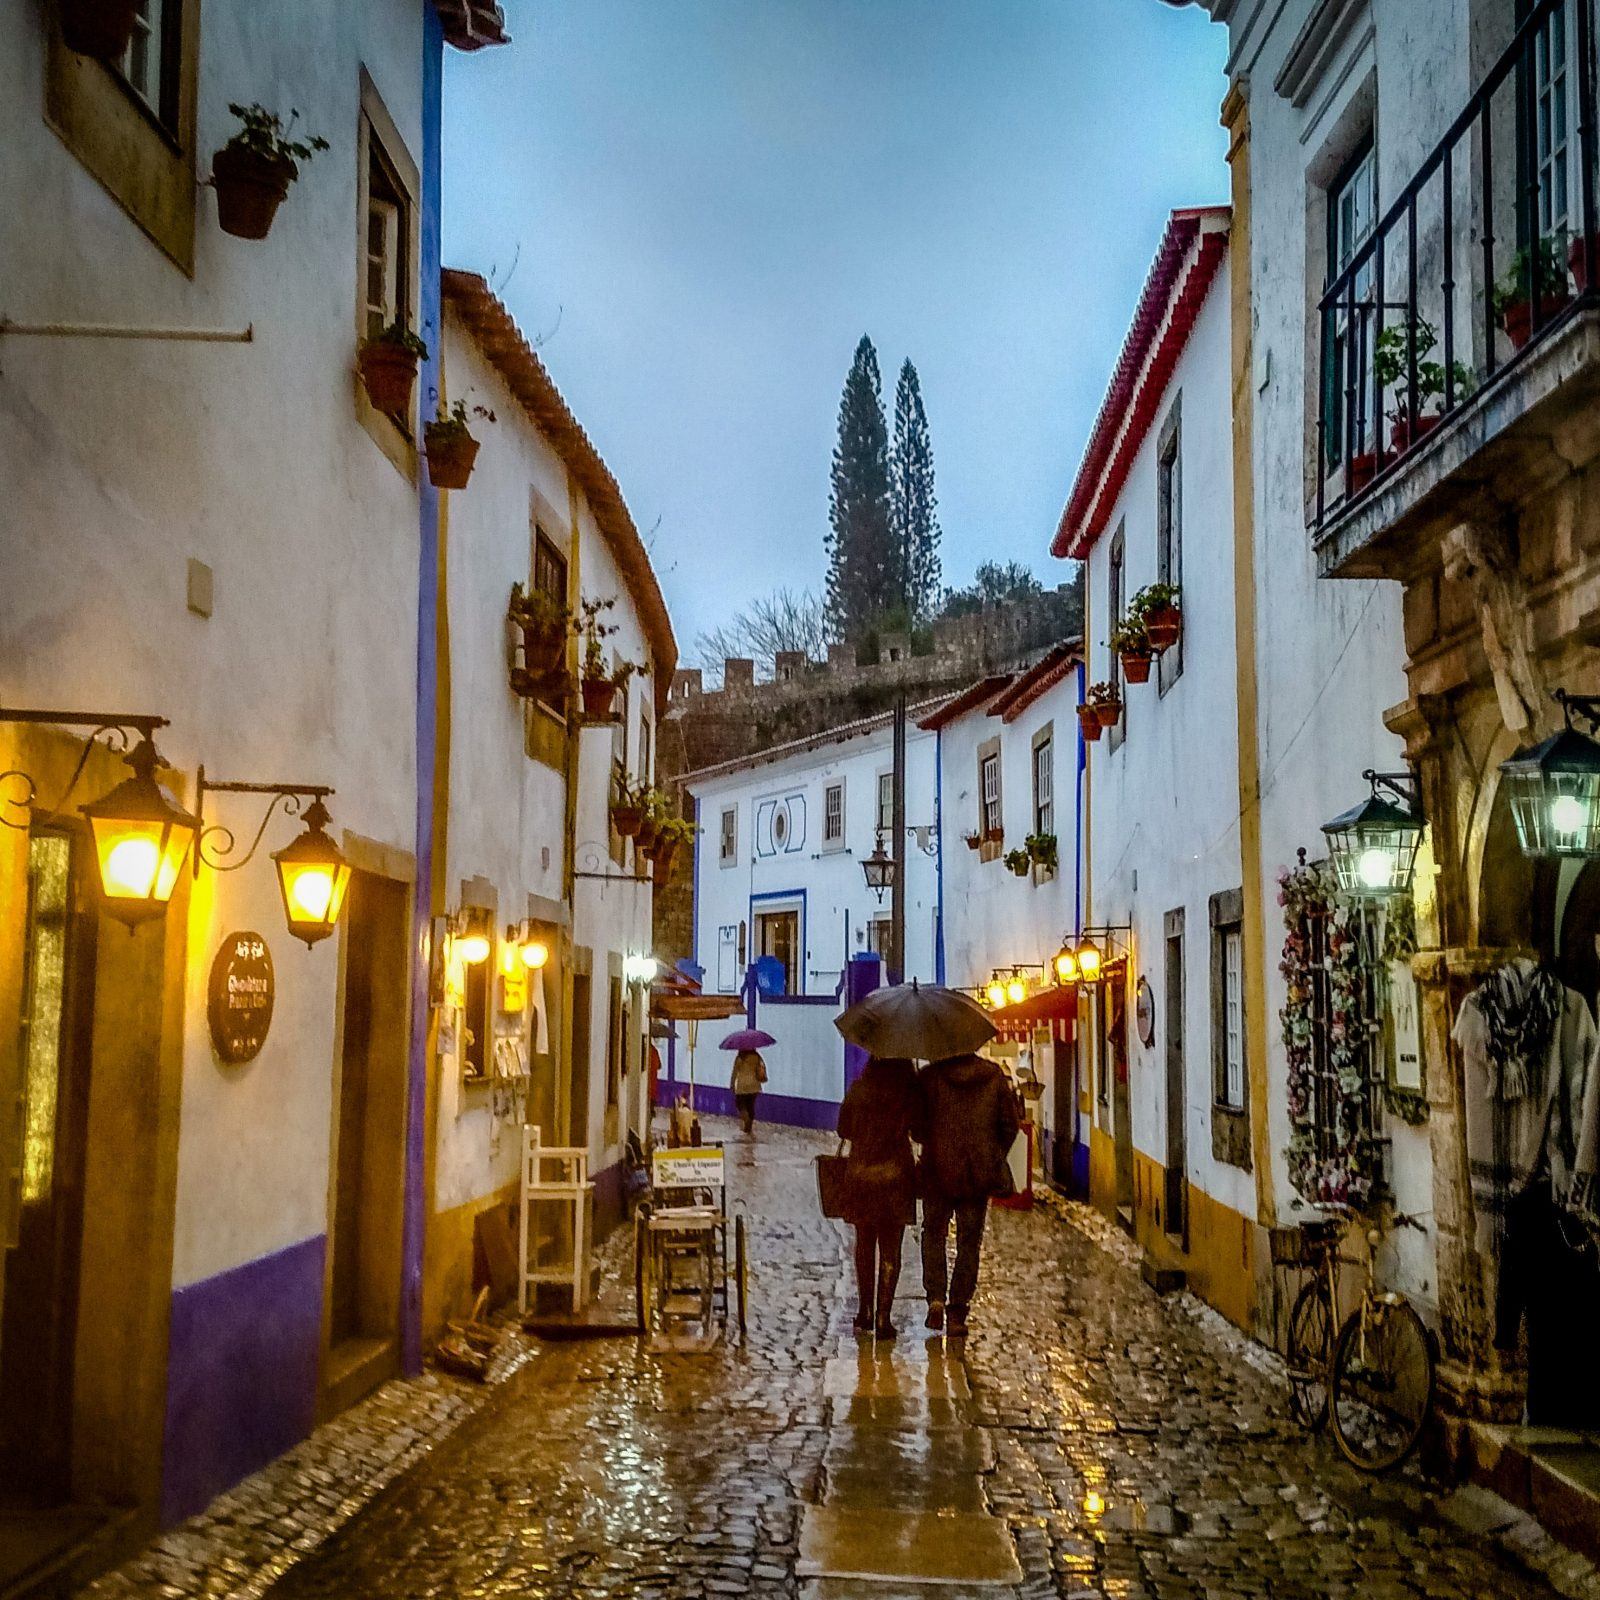 Cobbled street in Obidos